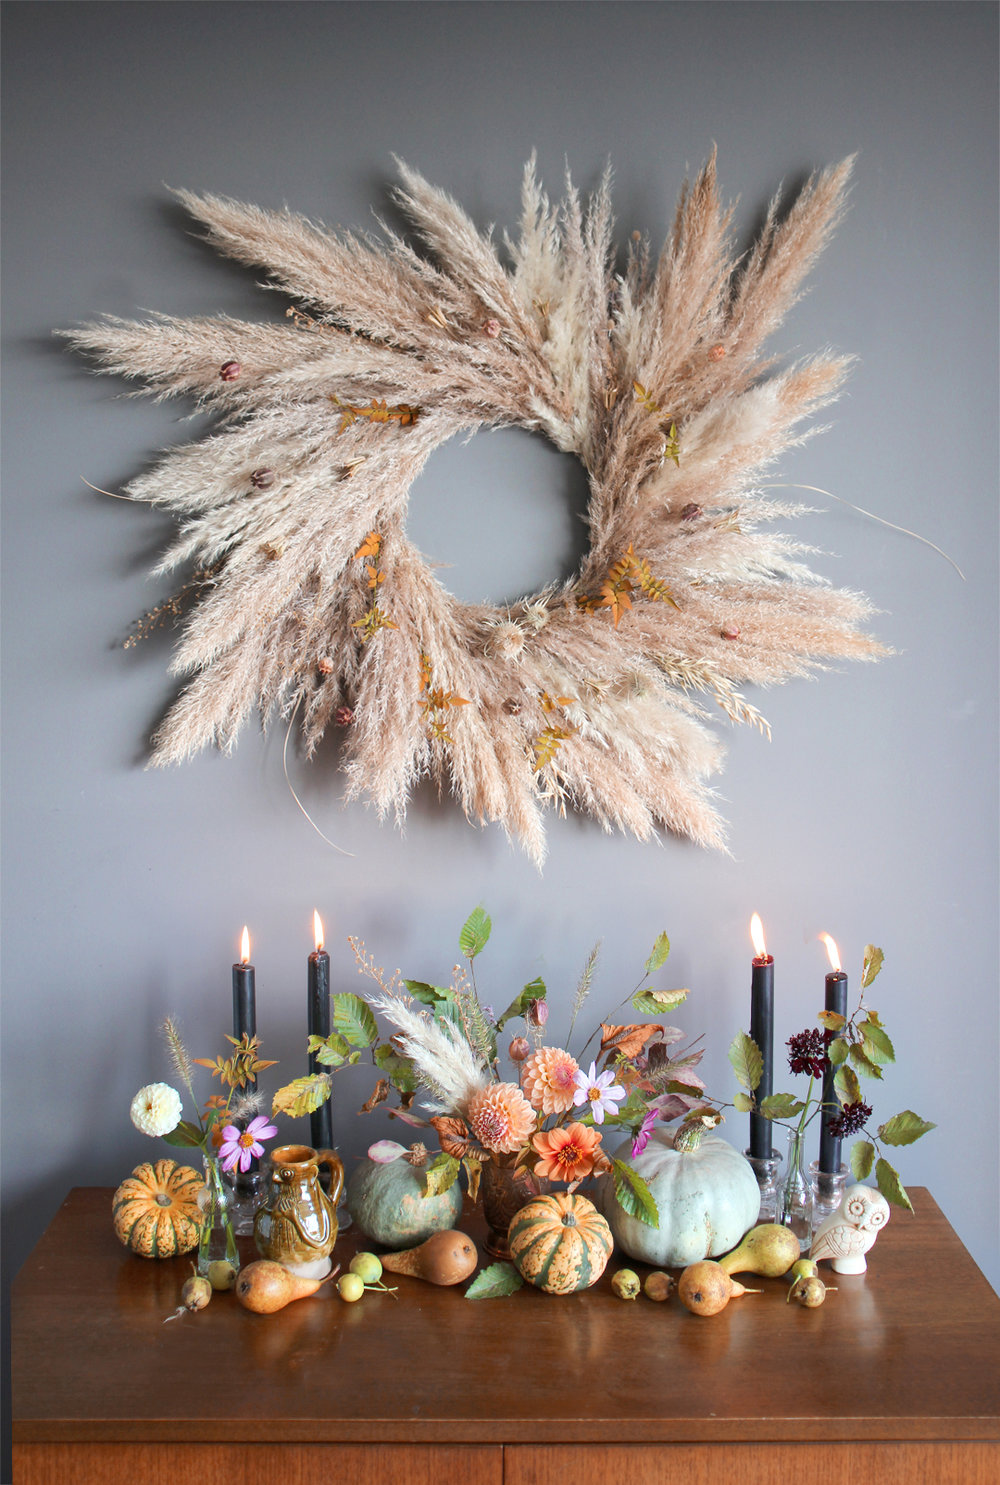 harvest-autumn-natural-floral-styling-decorations-display-nancy-straughan-sylist.jpg